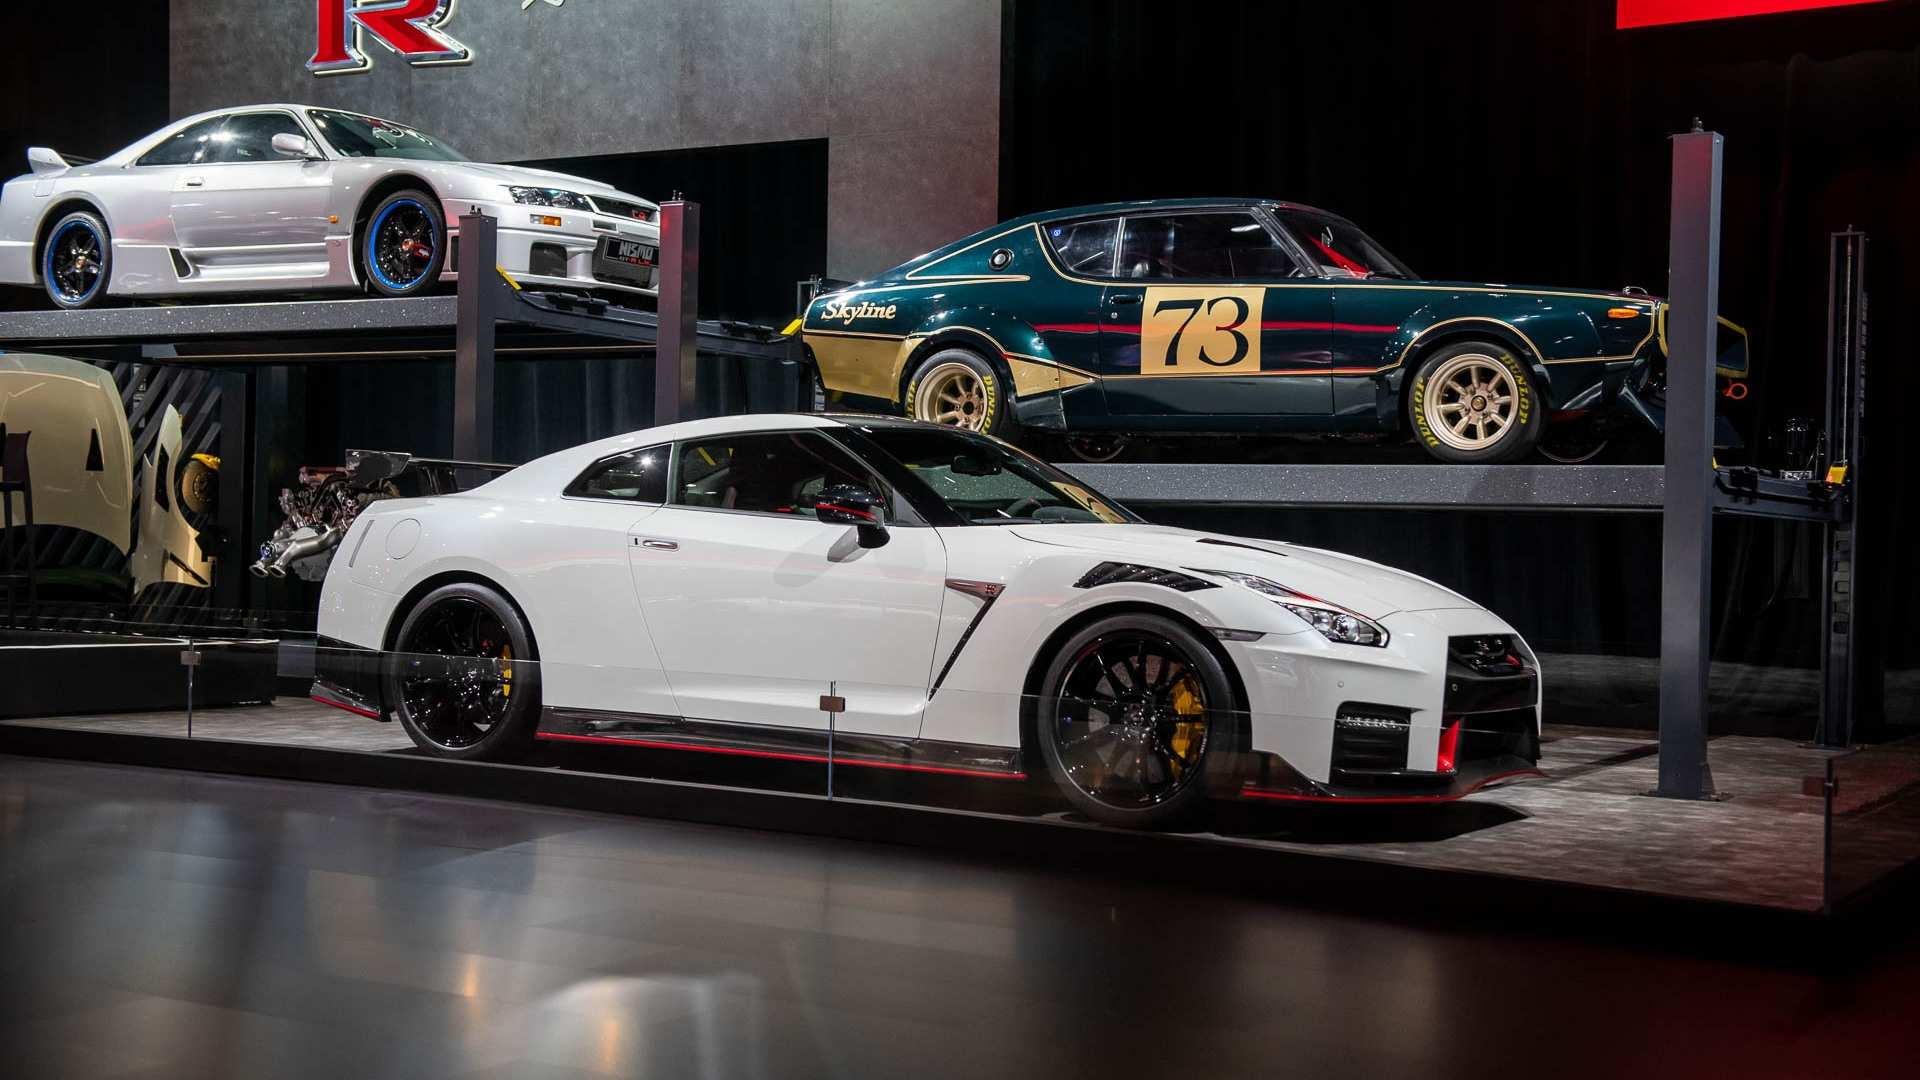 69 The Best 2020 Nissan Gtr Nismo Hybrid Overview